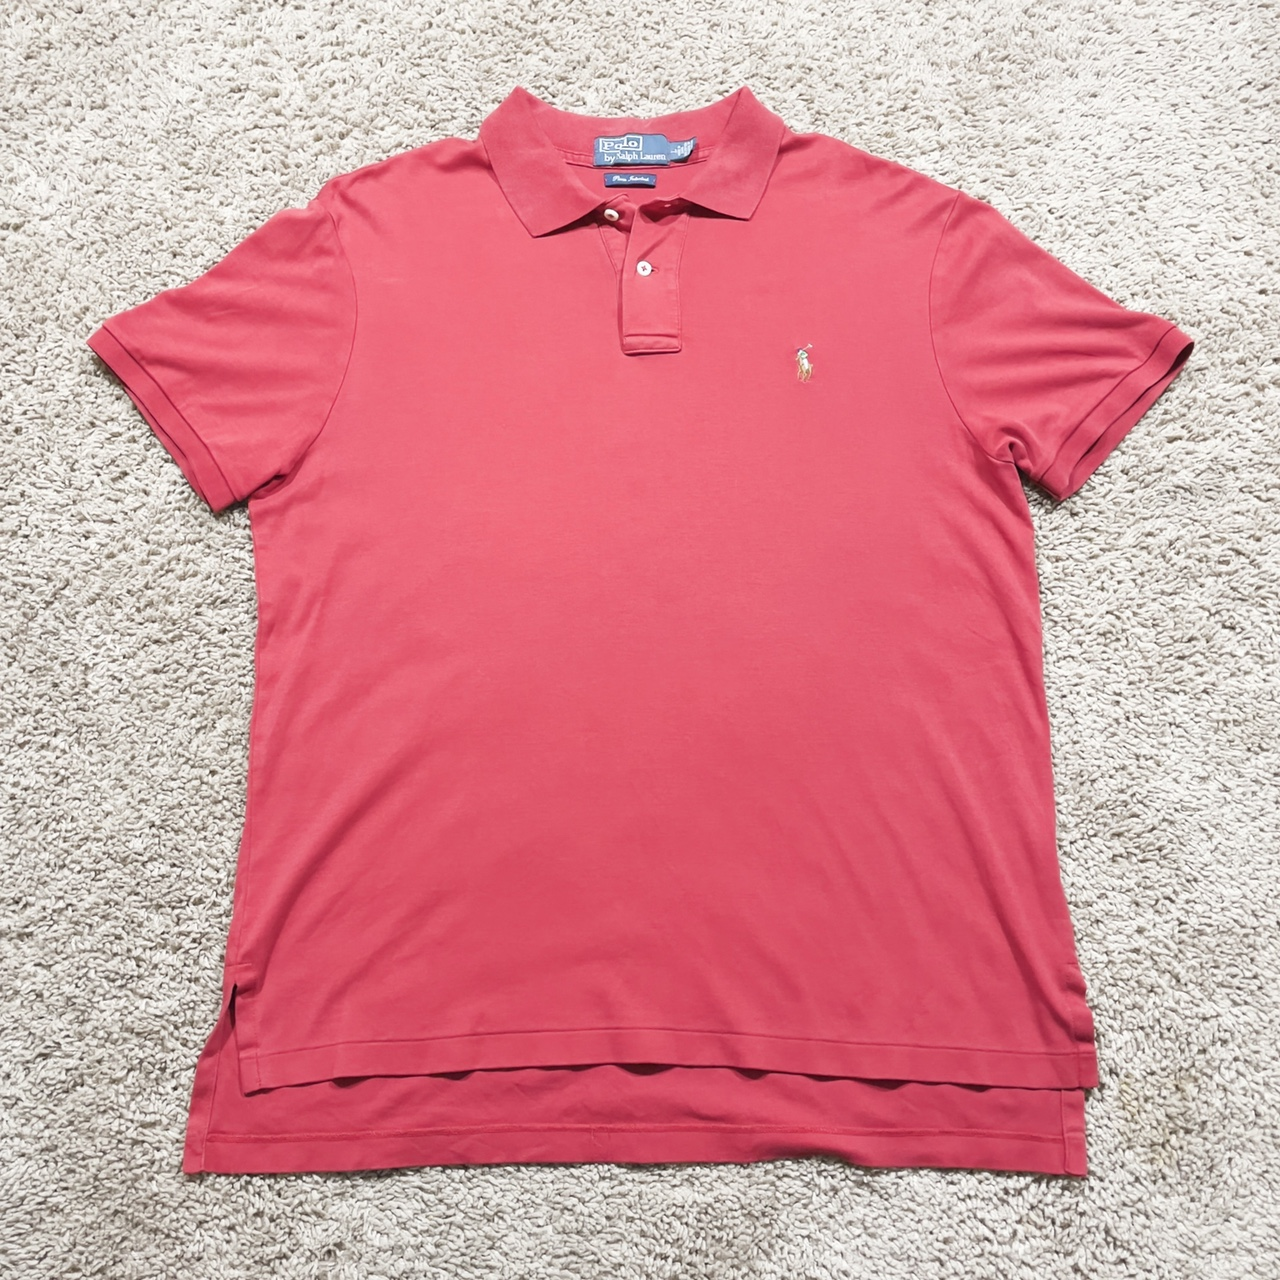 Product Image 1 - Polo By Ralph Lauren Polo